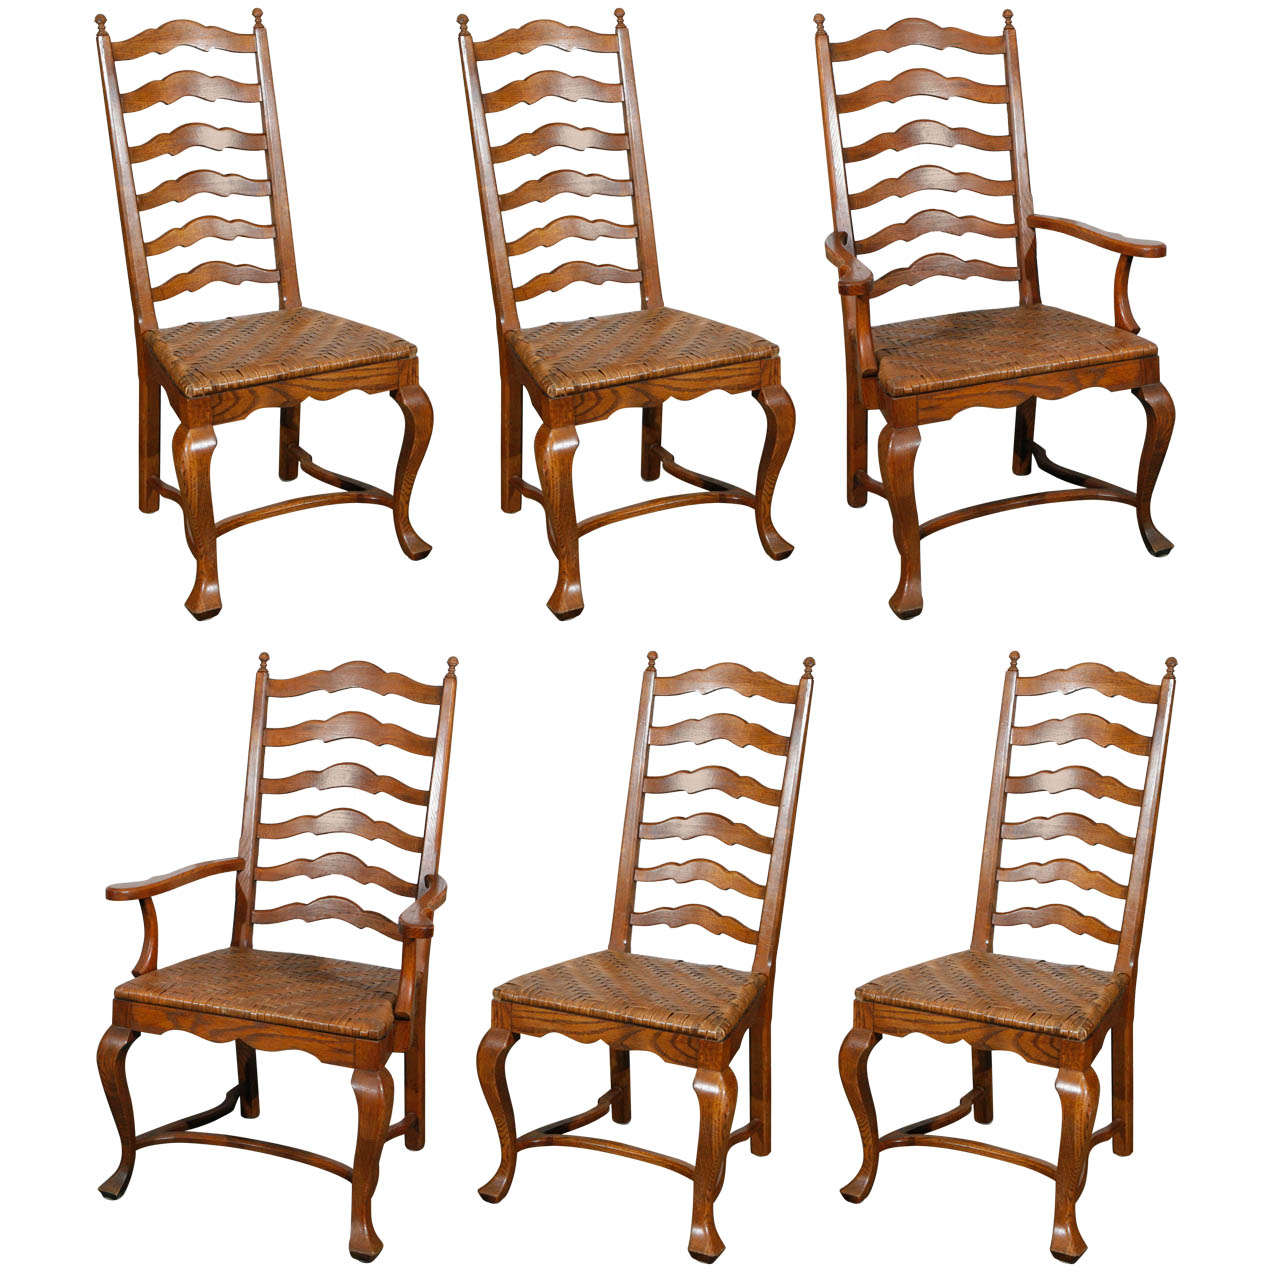 Set of 6 Ladder Back Oak Dining Chairs